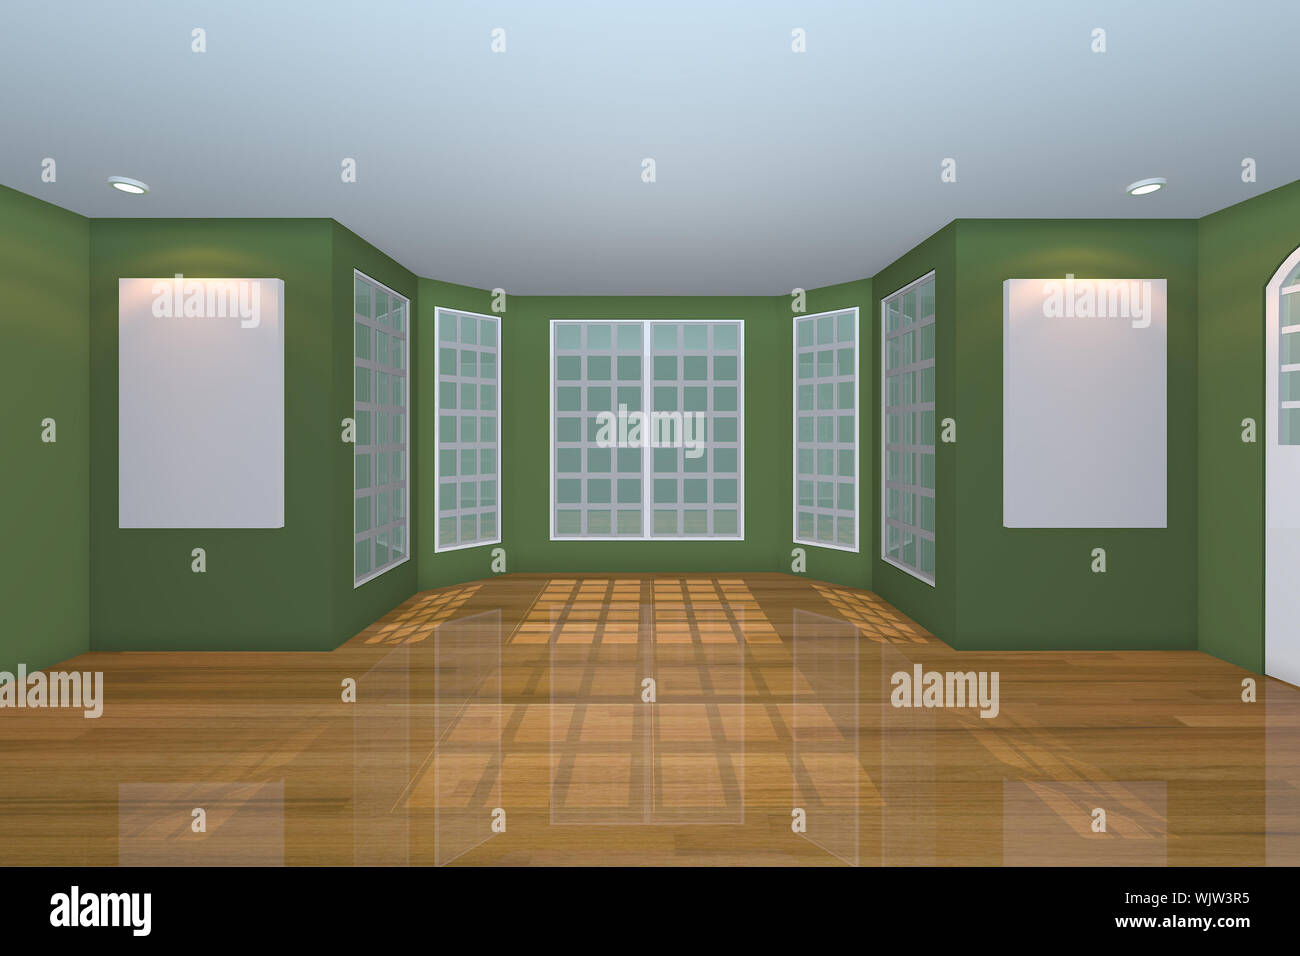 Home Interior Rendering With Empty Room Color Green Wall And Decorated With Wooden Floors Stock Photo Alamy